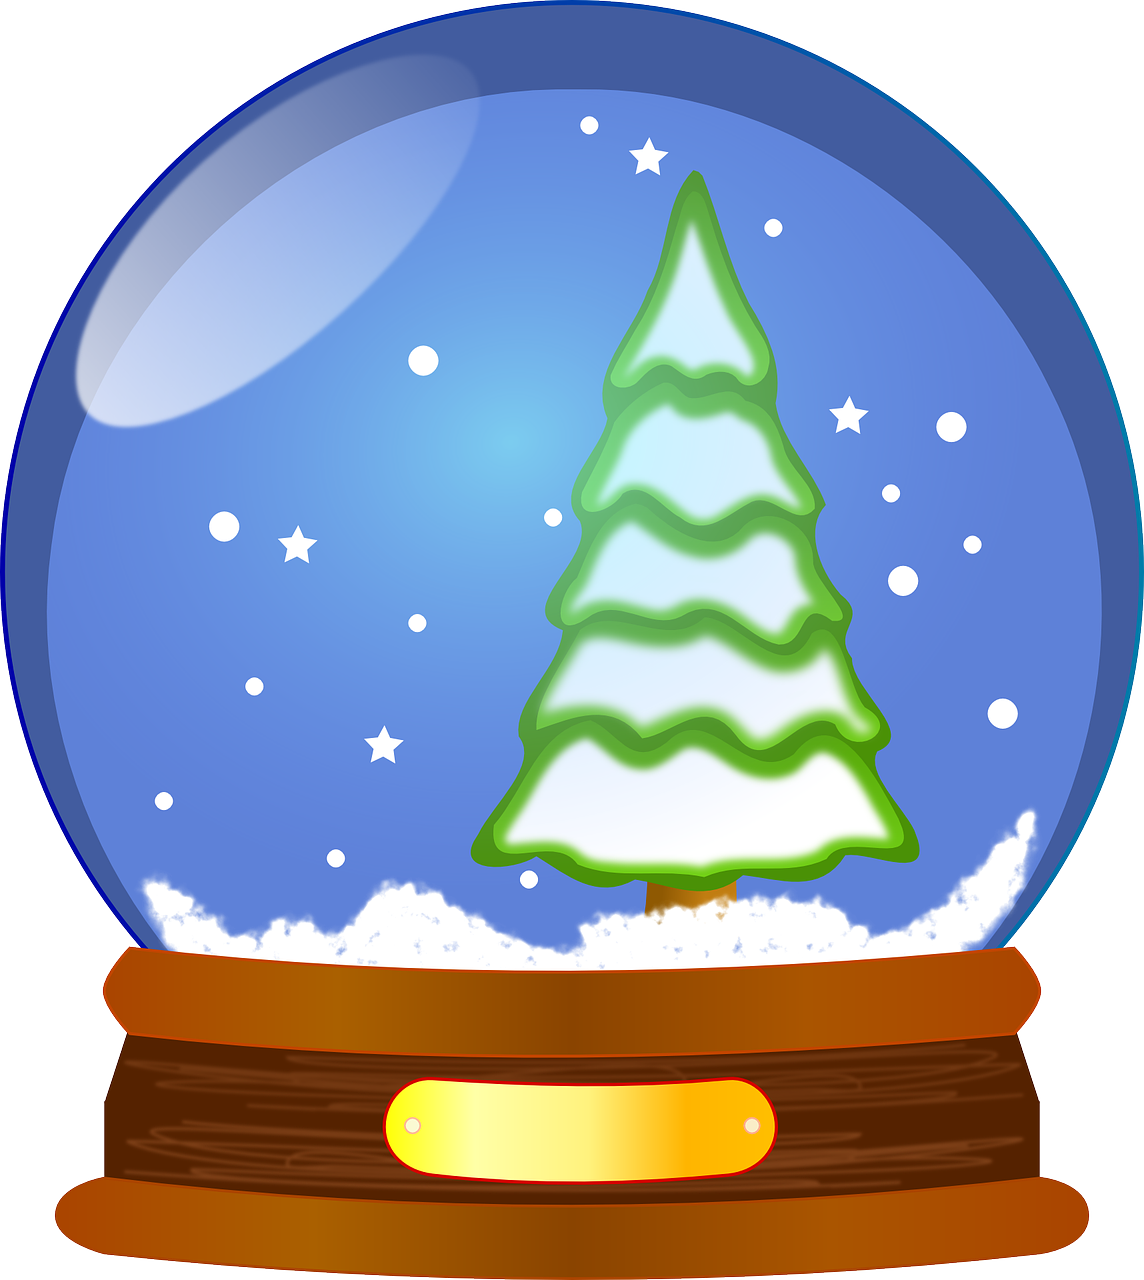 how to draw a Christmas tree 3